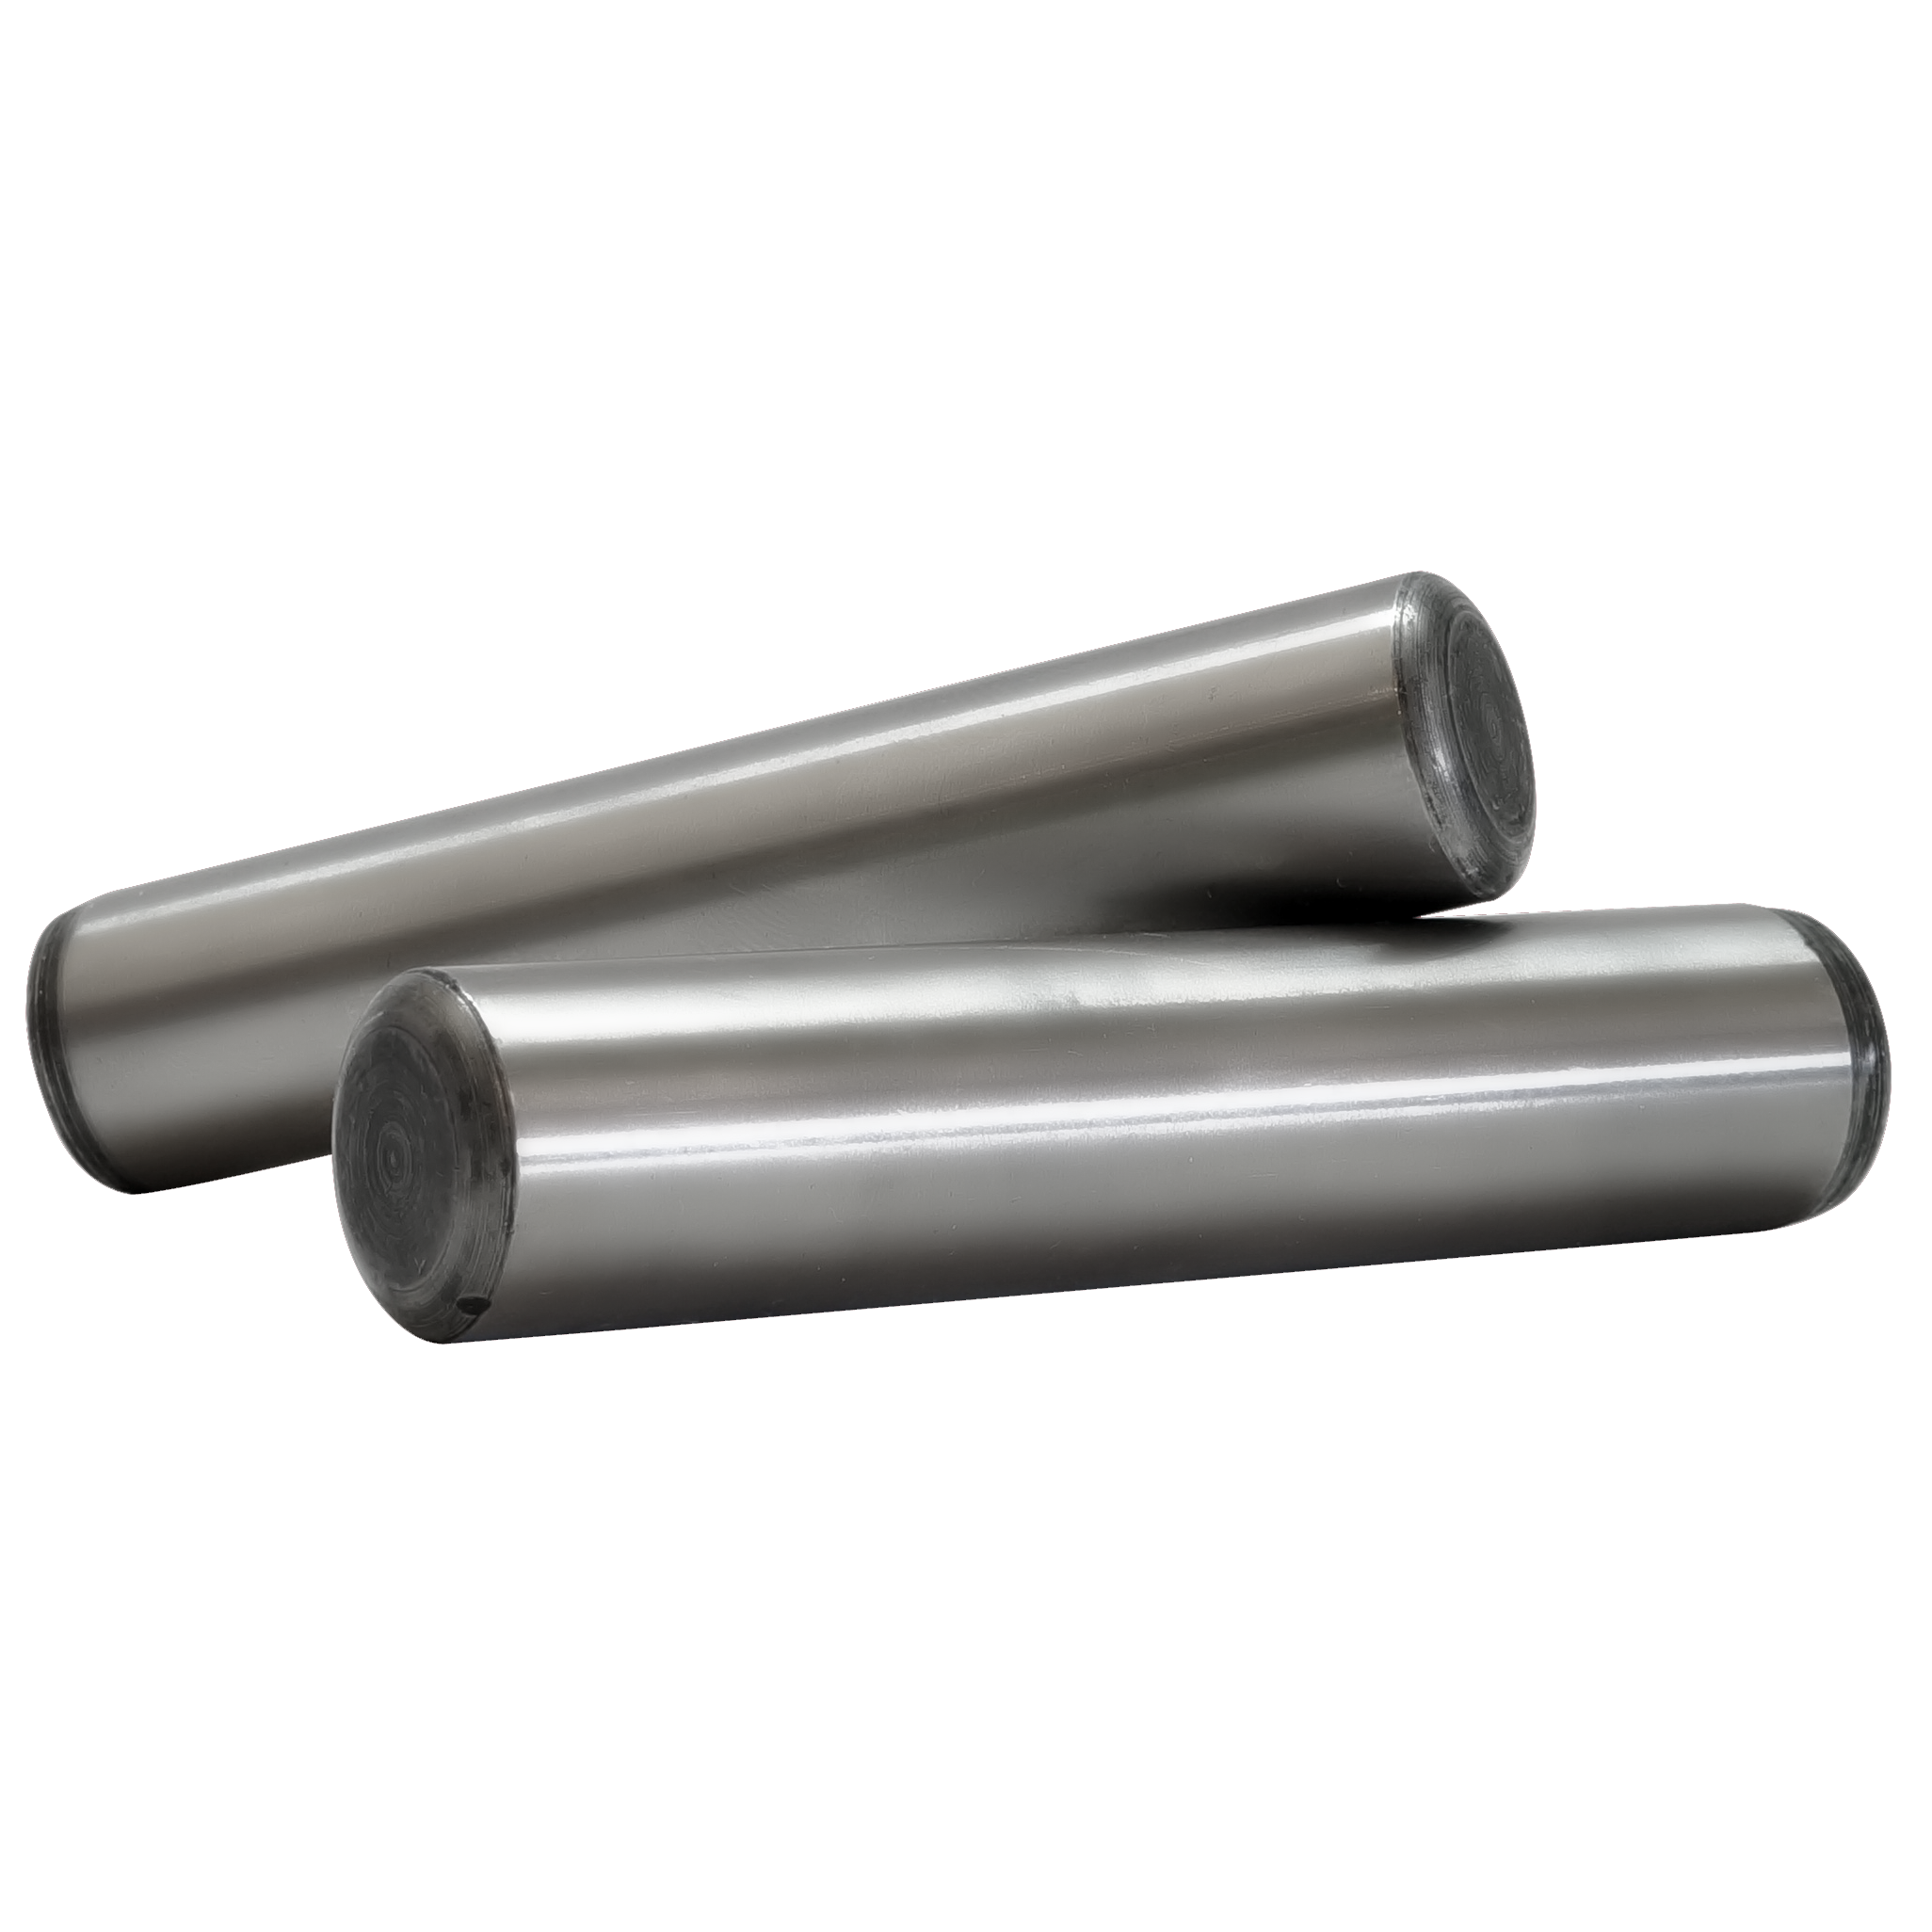 "5/8x3 1/2 ASME B18.8.2 Alloy Steel Dowel Pin Hardened Ground 0.0002"" Over Sized  (Unbrako)"